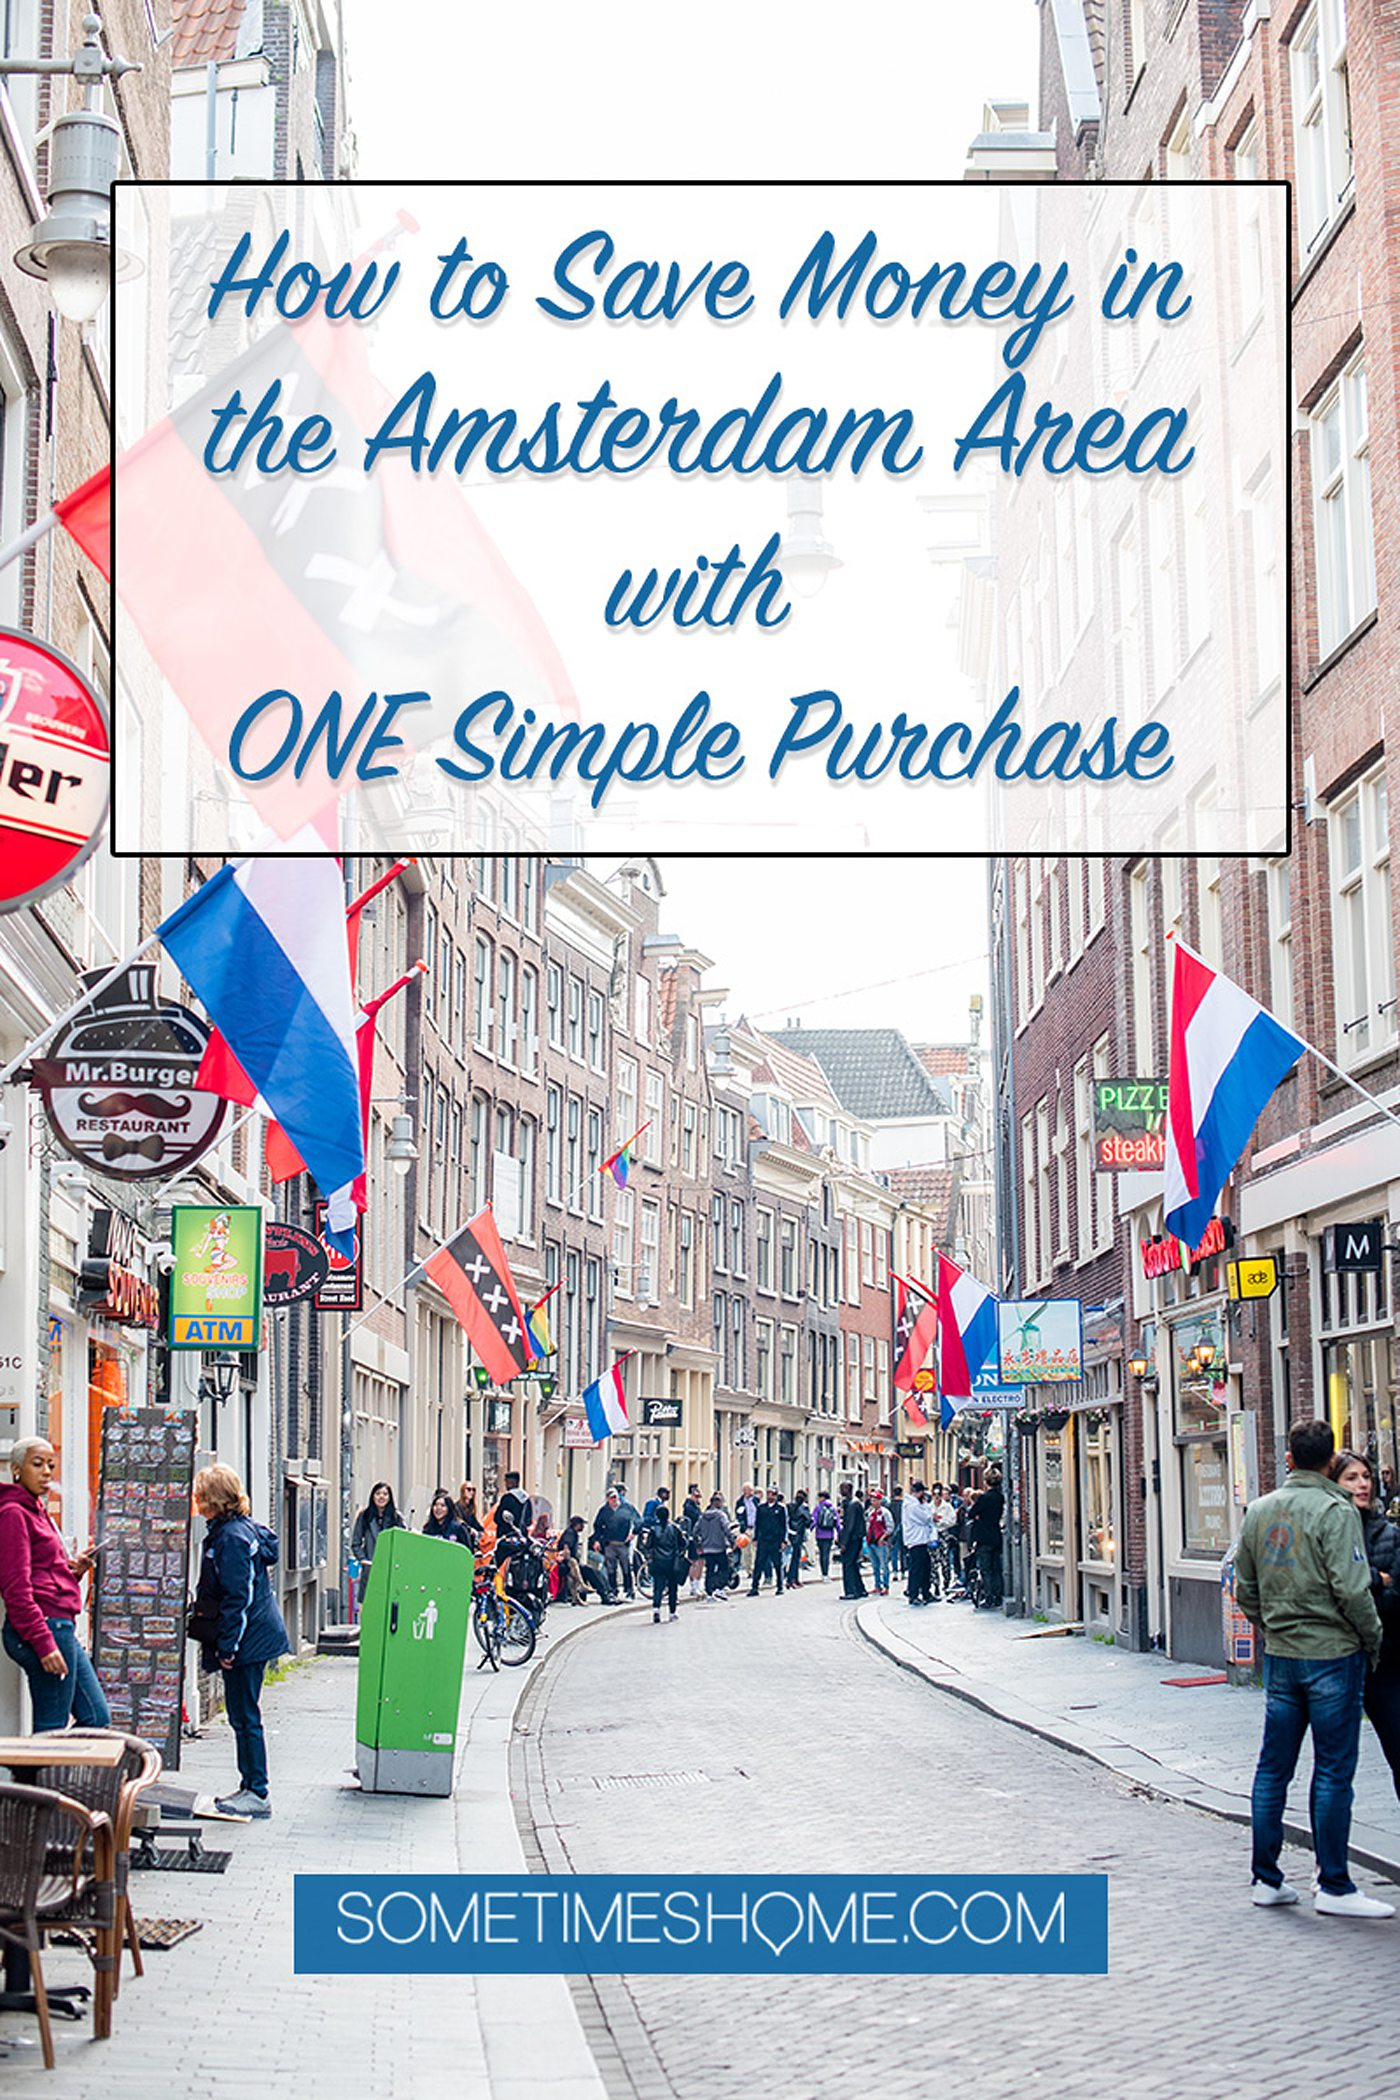 Things to do in Amsterdam, The Netherlands, and the surrounding area and how to save money on it all with one pass: I amsterdam City Card. We share where and how to buy it, how it works, what it discounts and gets you into for free, and more. Want to save money? Click through for extensive info and our review! #AmsterdamArea #AmsterdamCityPass #IAmsterdamCityCard #AmsterdamCityCard #TheNetherlands